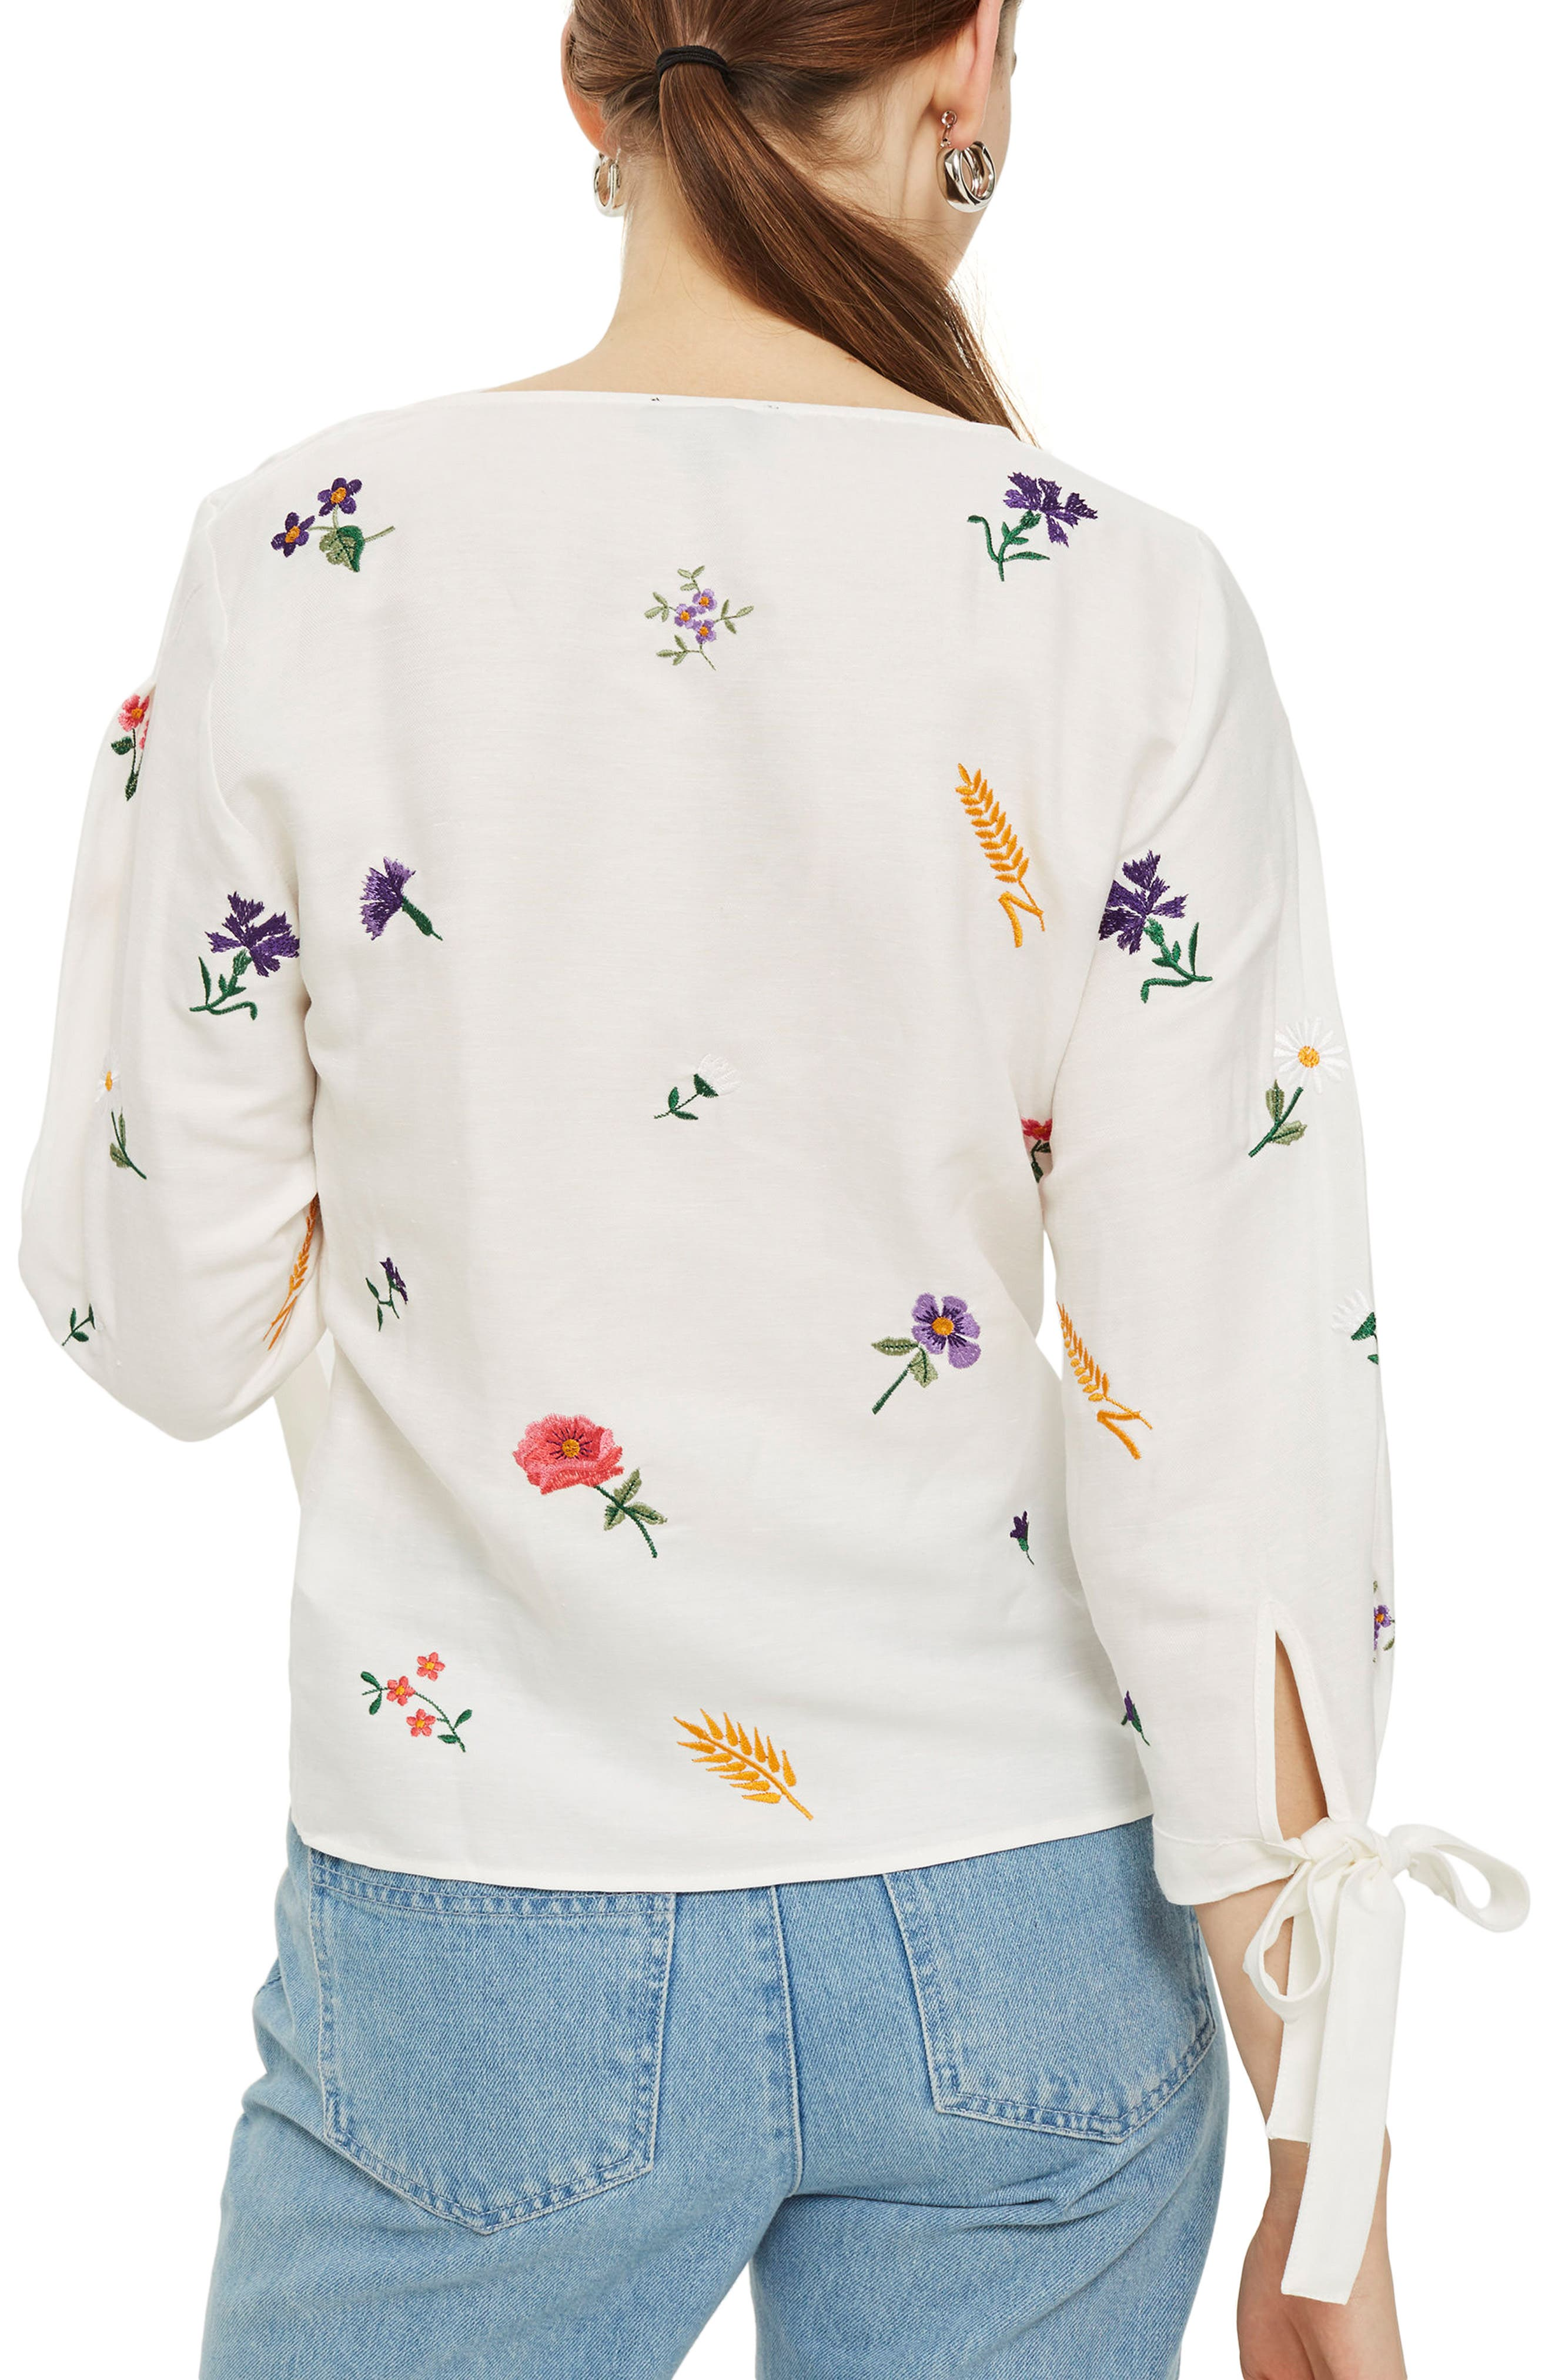 Field Embroidered Floral Blouse,                             Alternate thumbnail 2, color,                             900